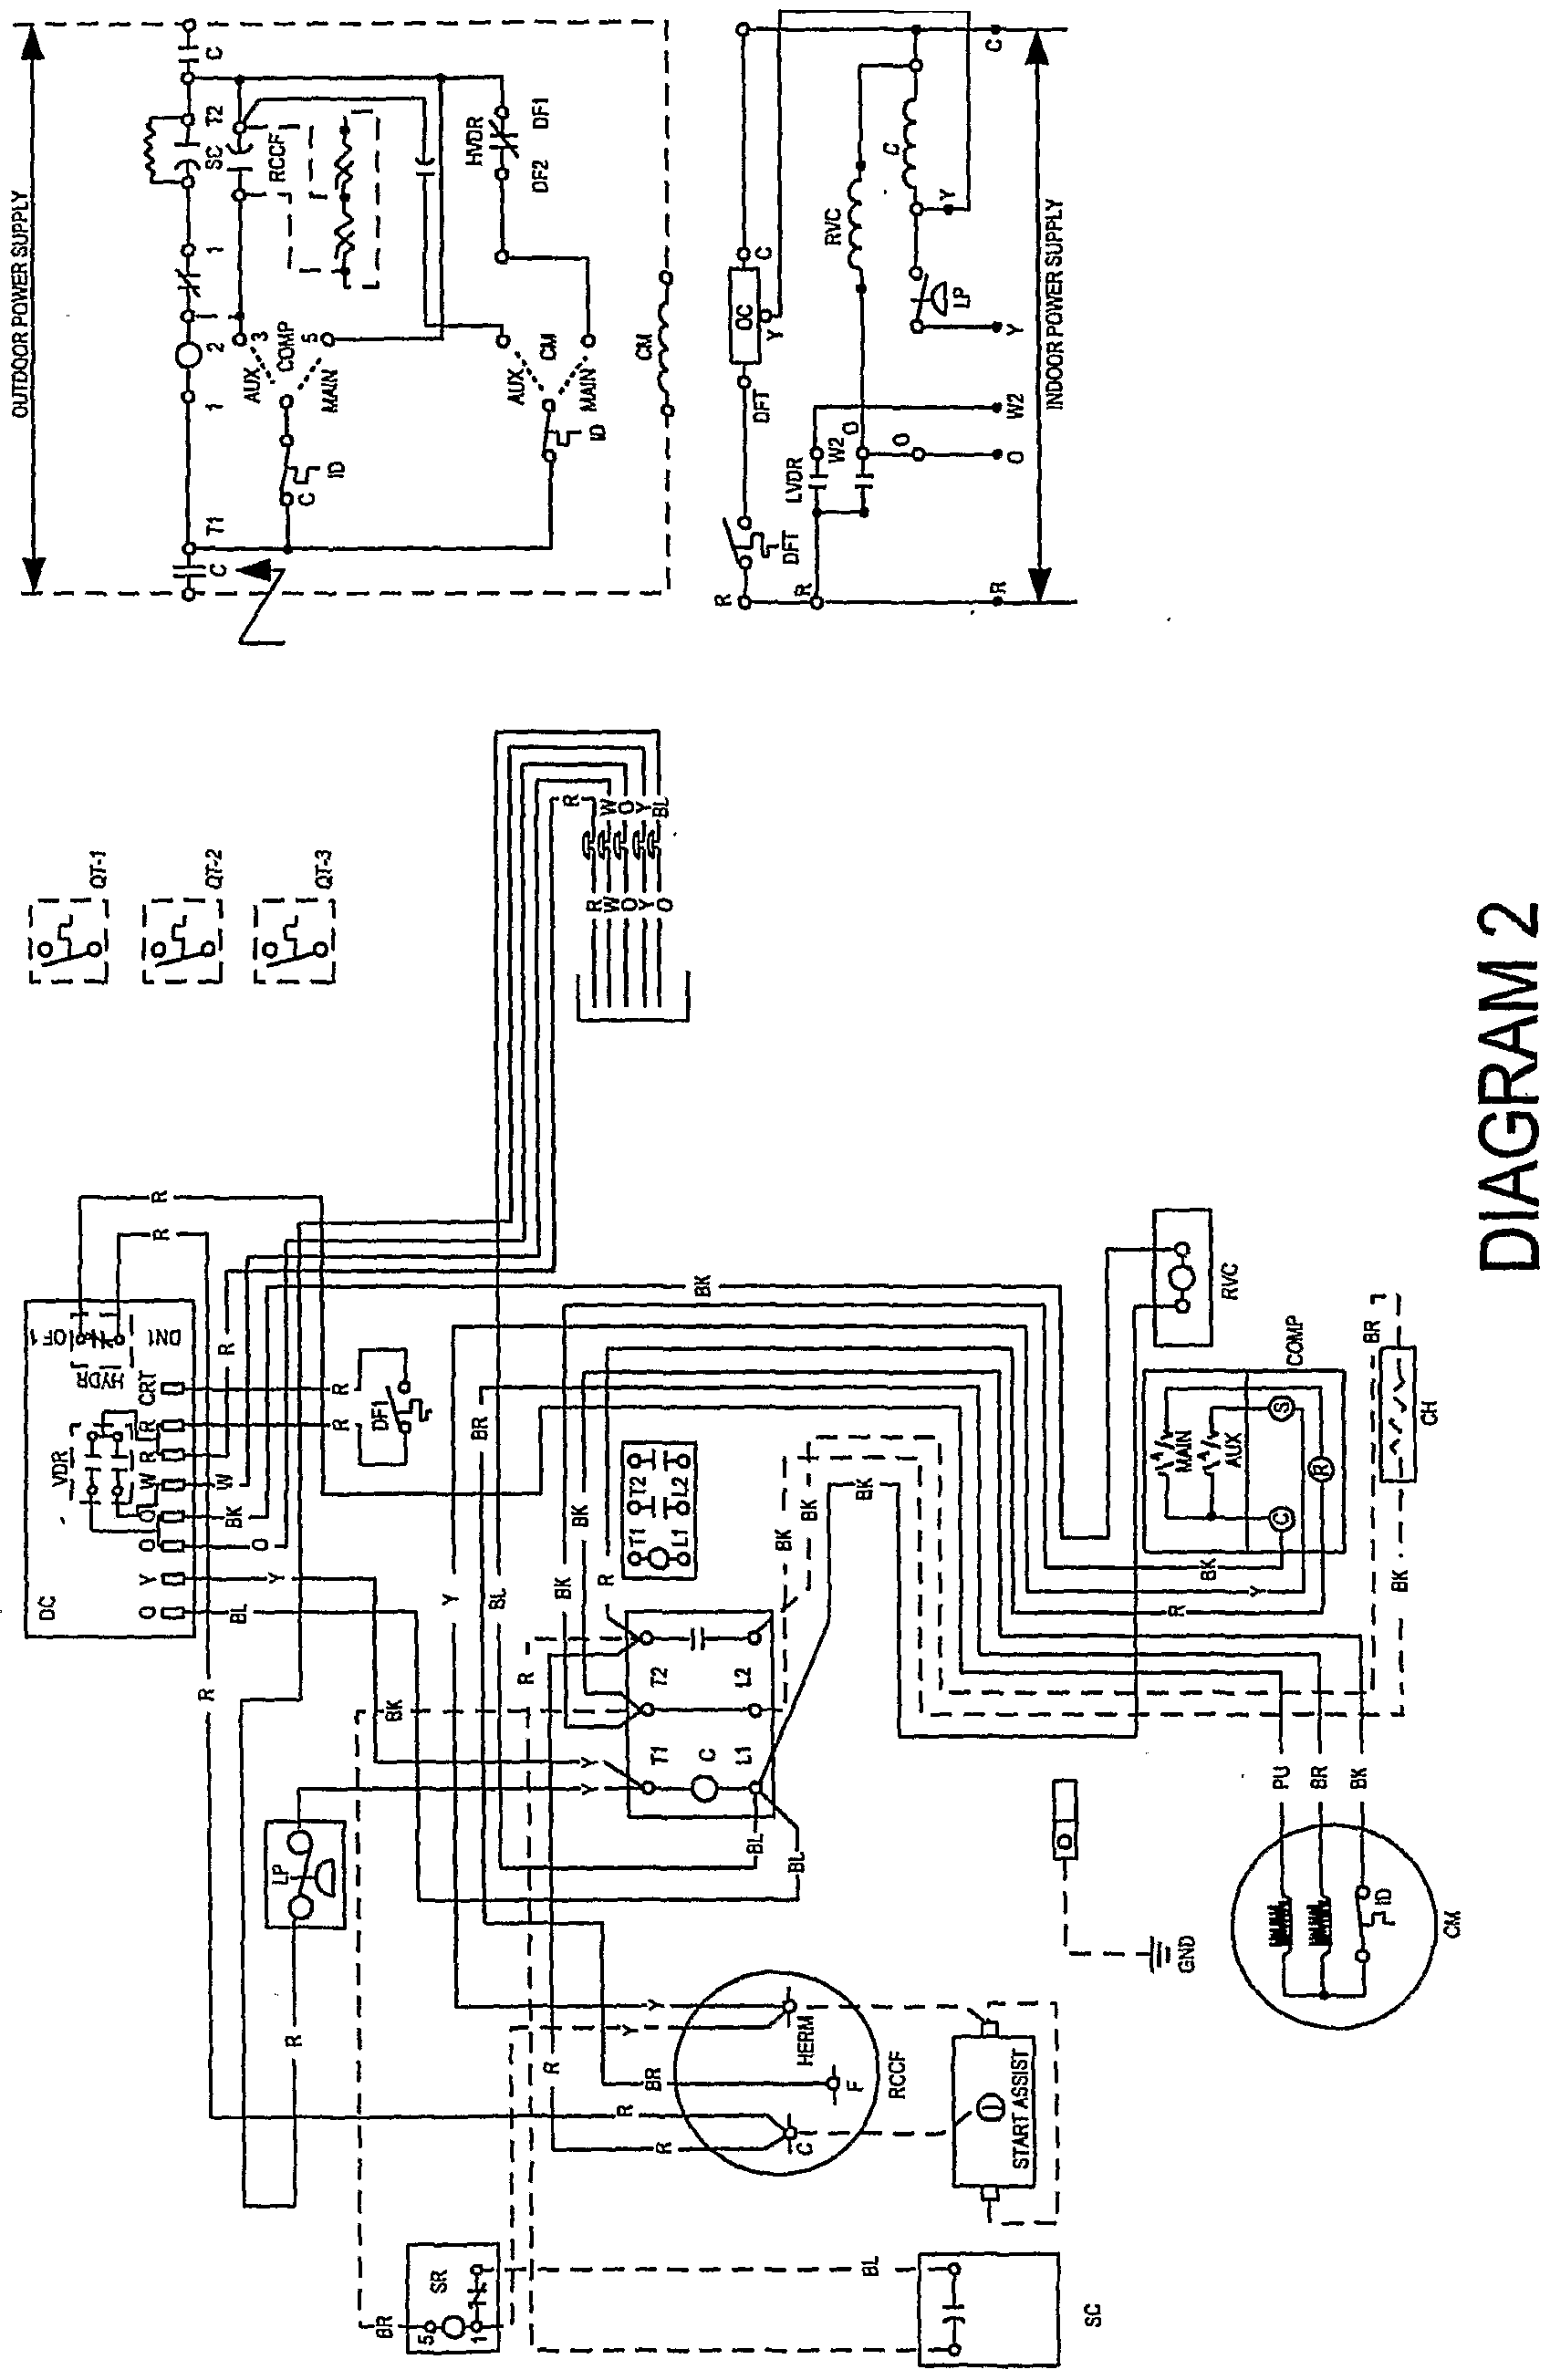 imgf000026_0001 patent wo2006079116a2 solar panel and heat pump powered electric first company fan coil wiring diagram at edmiracle.co